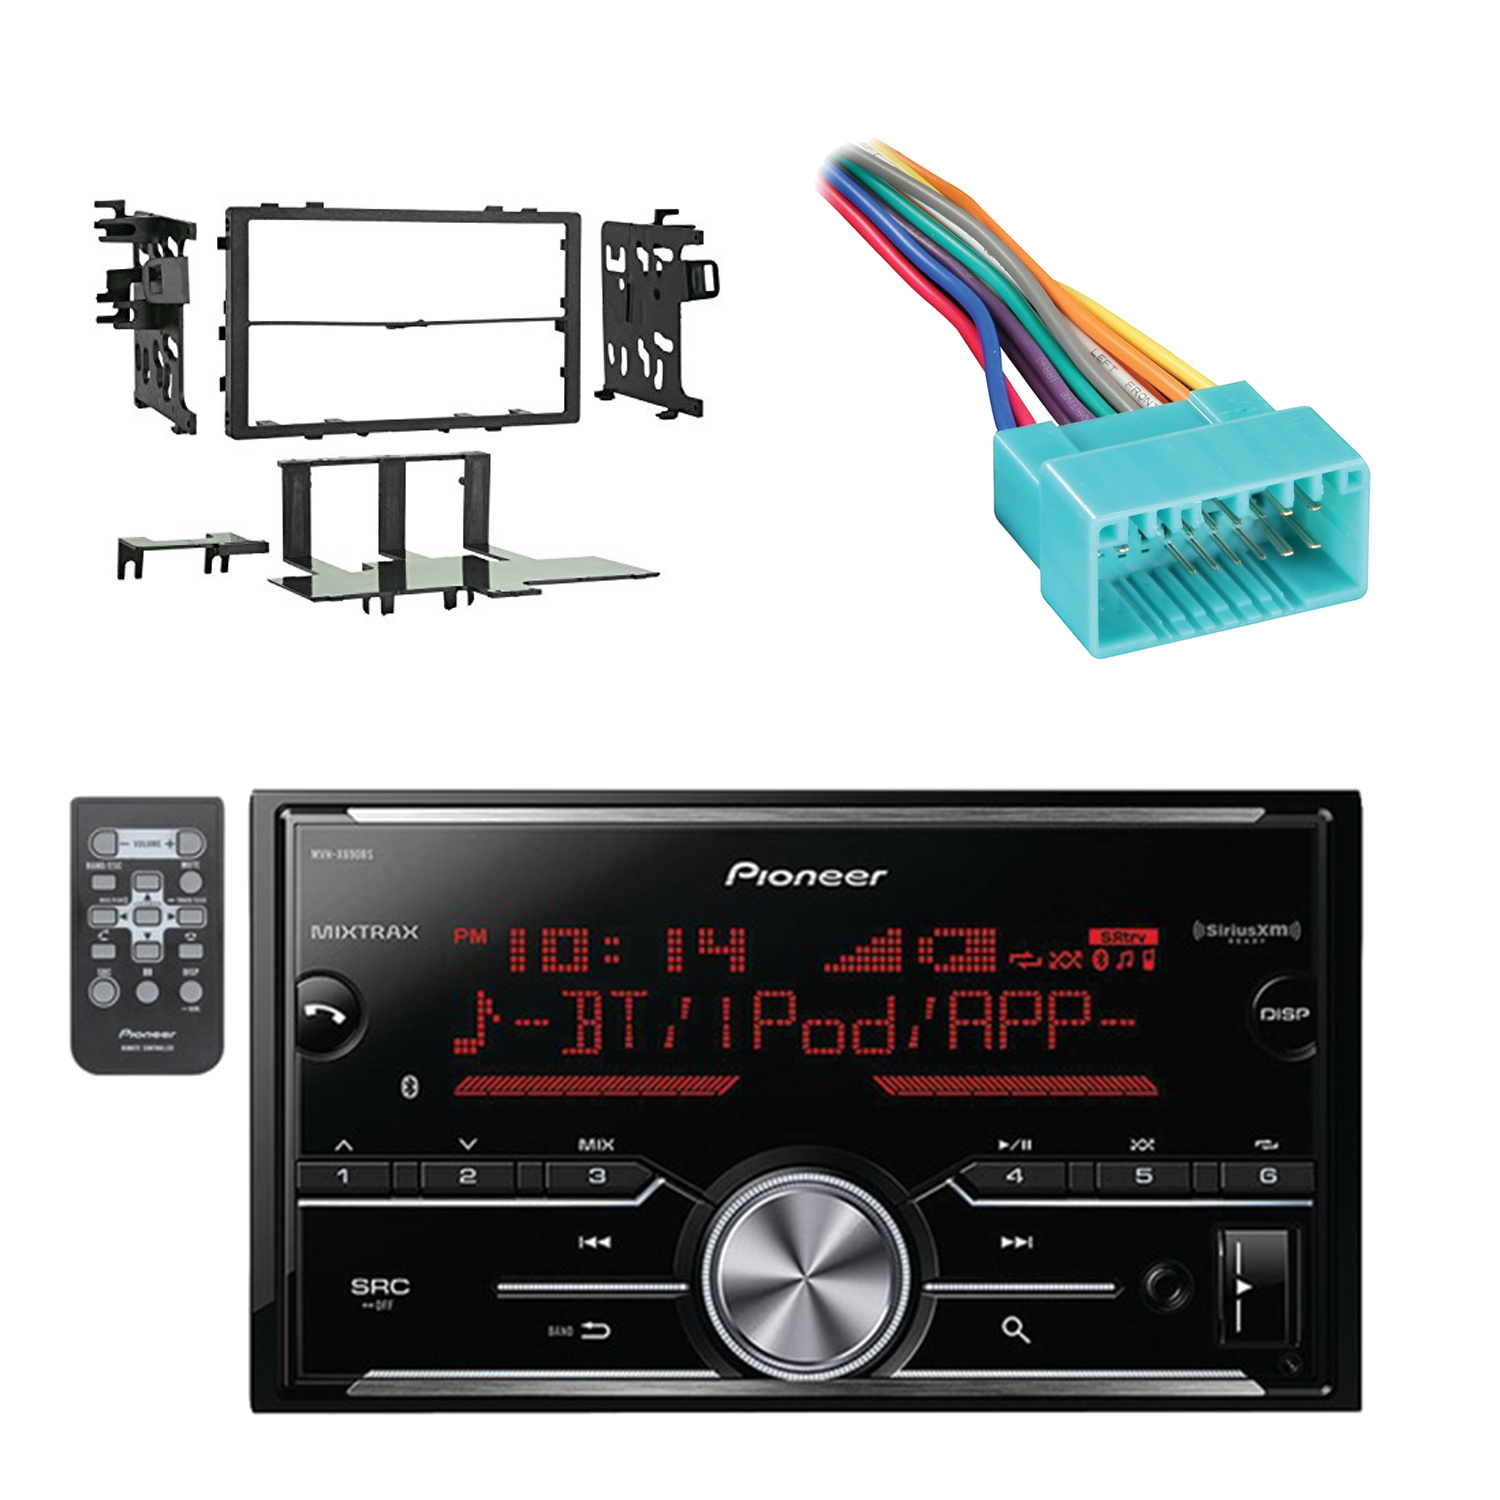 Pioneer Vehicle Digital Media 2DIN Receiver with Bluetooth Enhanced Audio Functions, Black with Metra Double DIN Installation Kit and Metra Wiring Harness for 1998-2005 Acura/Suzuki/Honda Vehicles